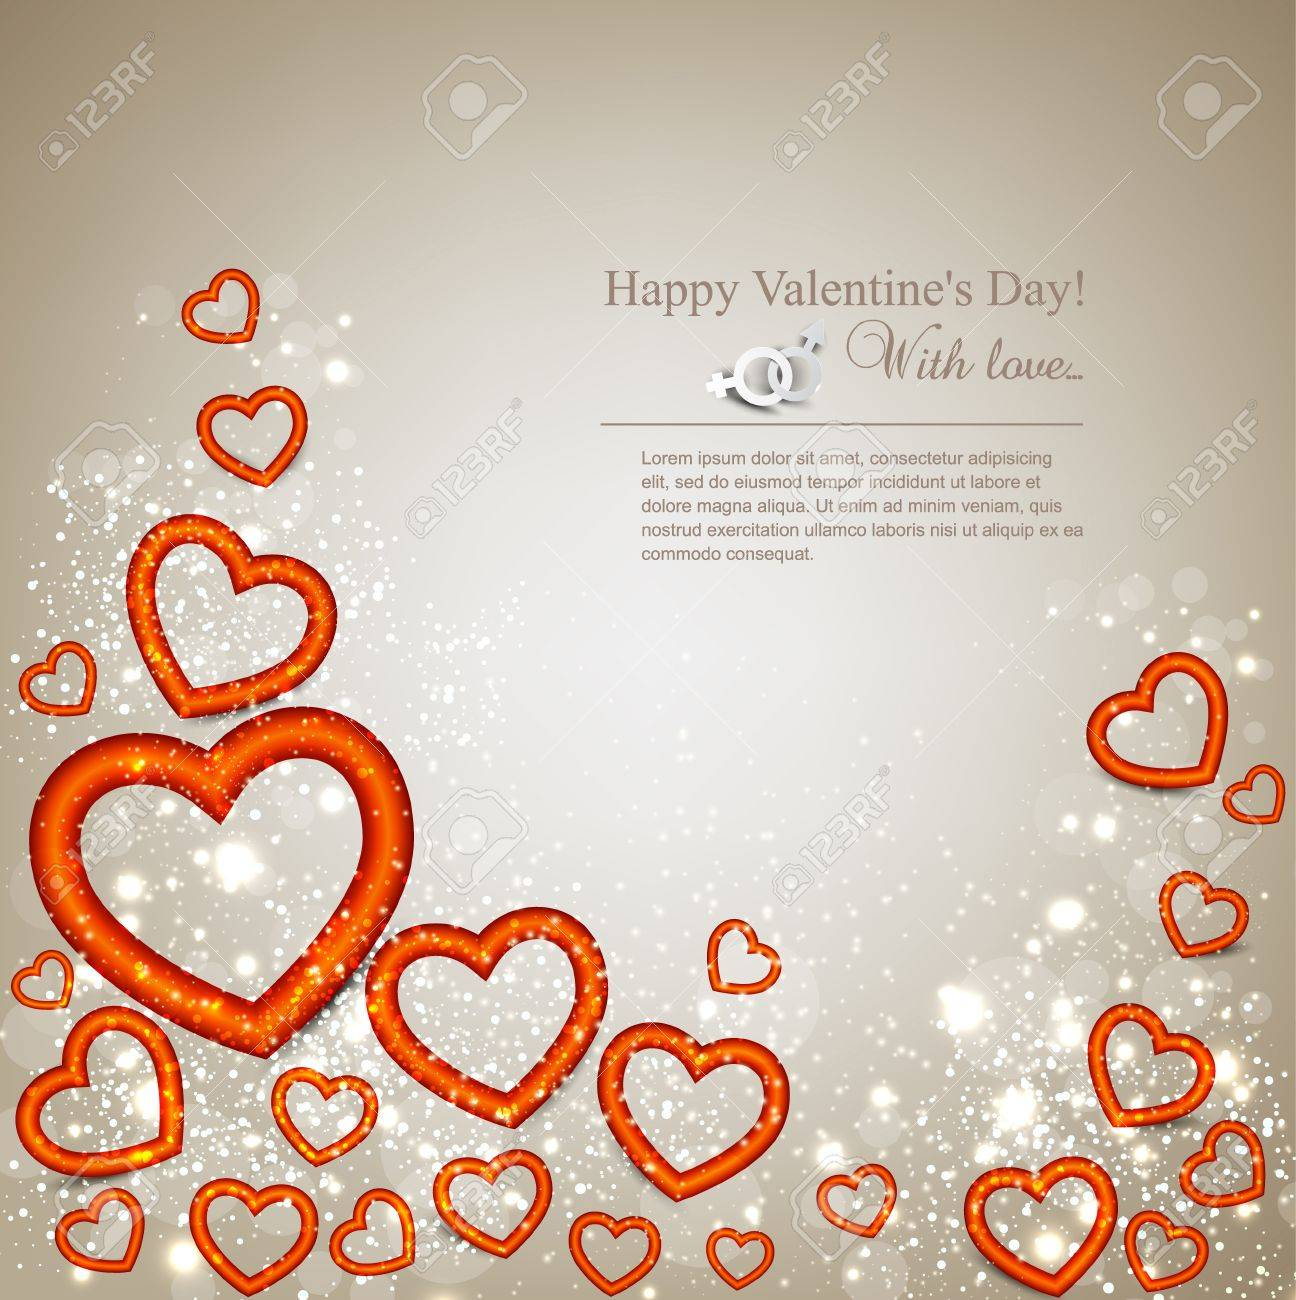 Elegant background with hearts  Valentine Stock Vector - 16874158